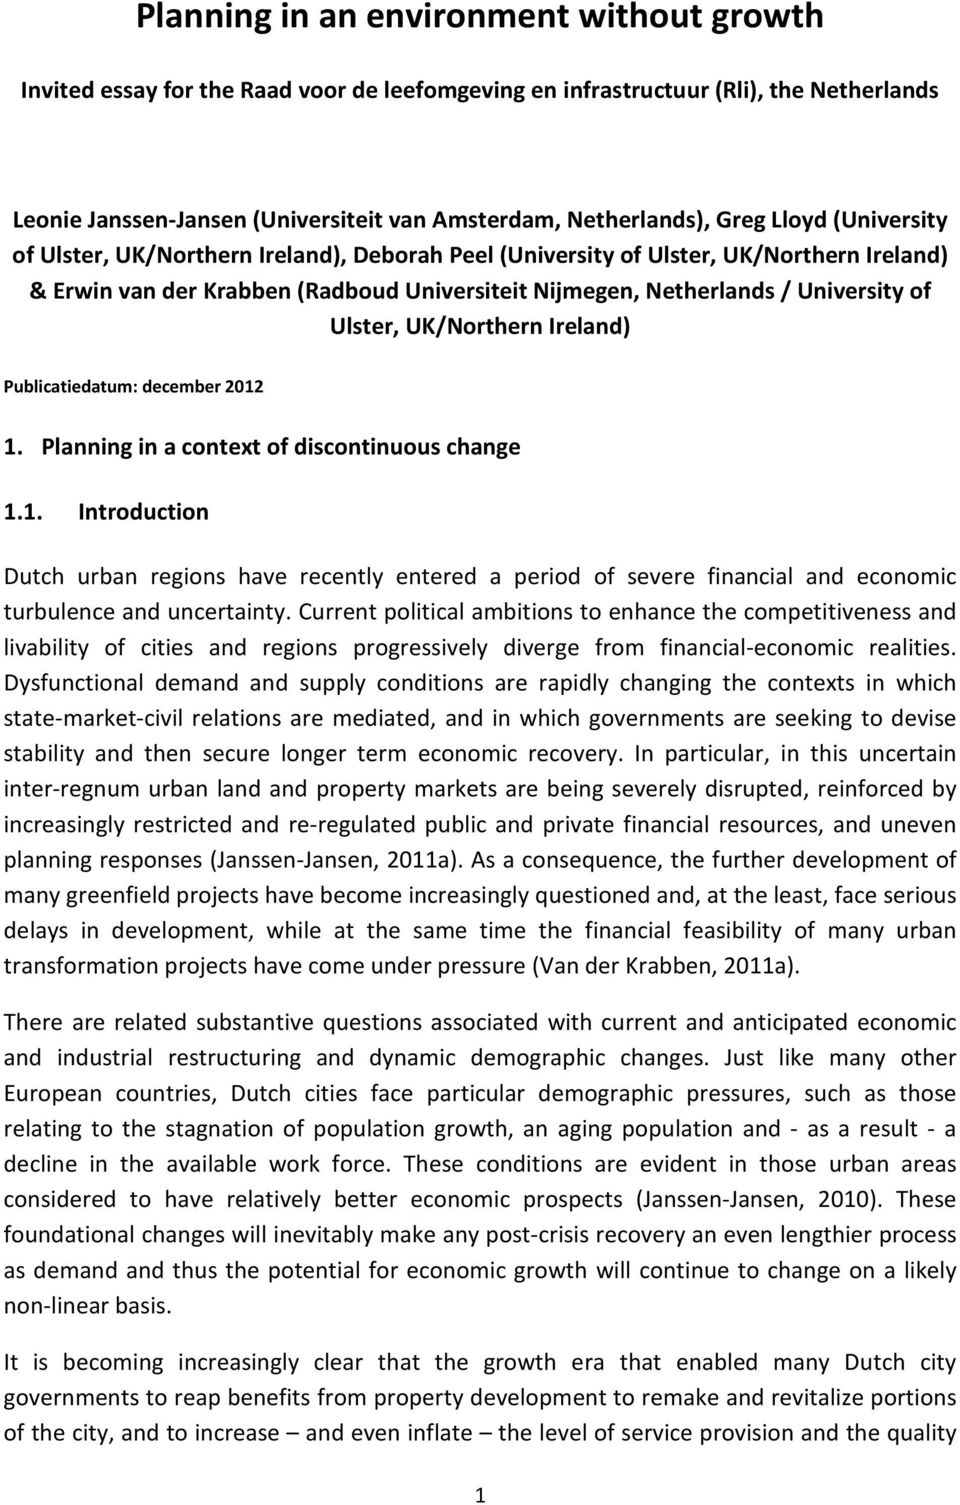 Ulster, UK/Northern Ireland) Publicatiedatum: december 2012 1. Planning in a context of discontinuous change 1.1. Introduction Dutch urban regions have recently entered a period of severe financial and economic turbulence and uncertainty.